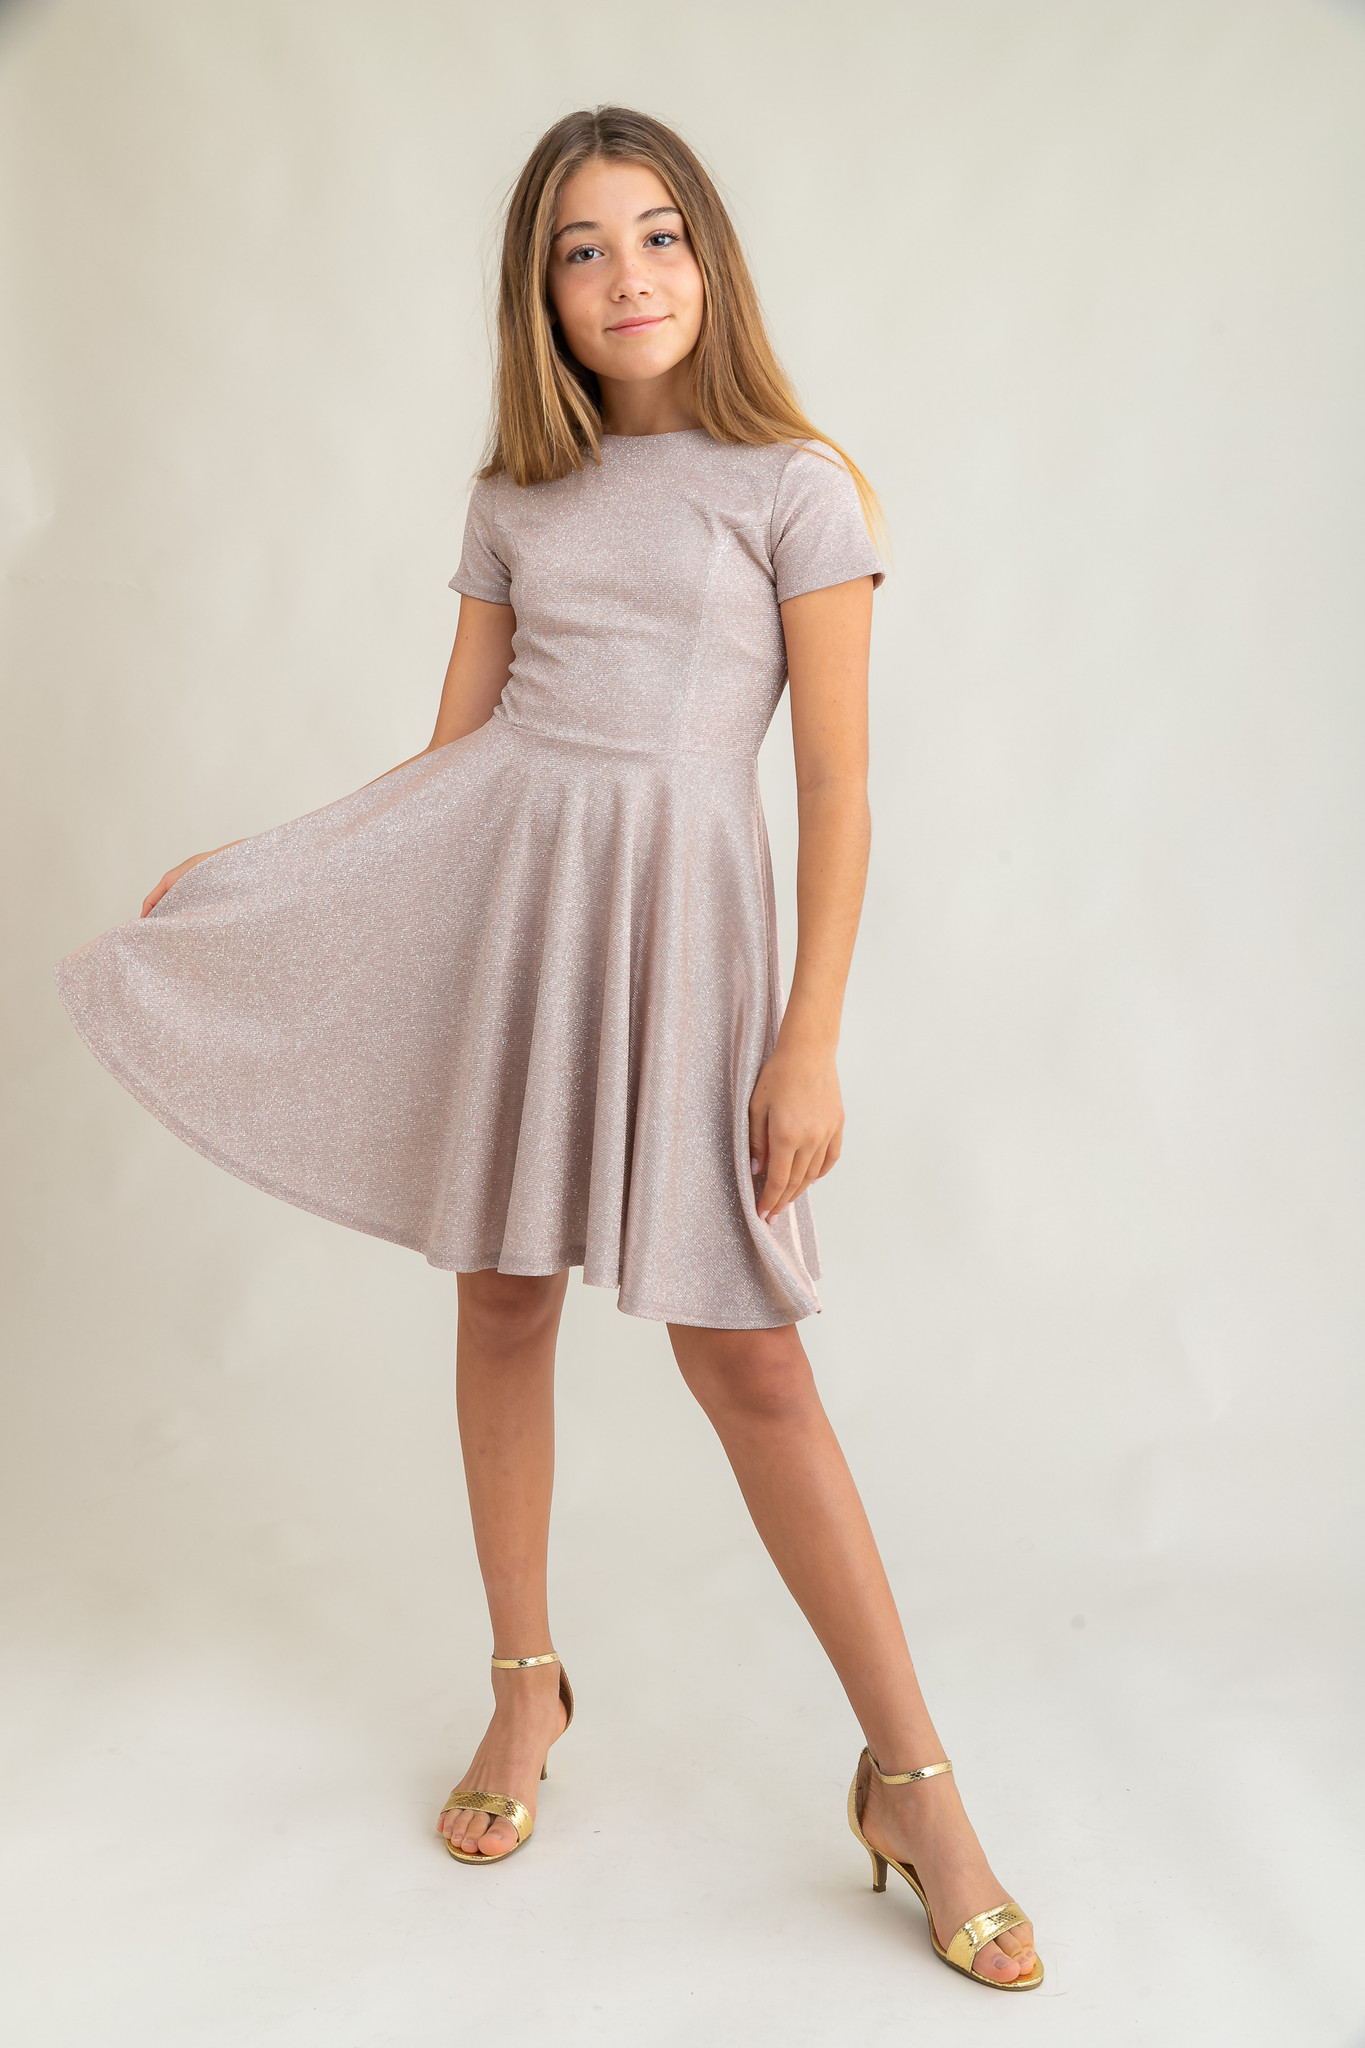 Tween Girls Champagne Glitter Short Sleeve Dress in Longer Length.